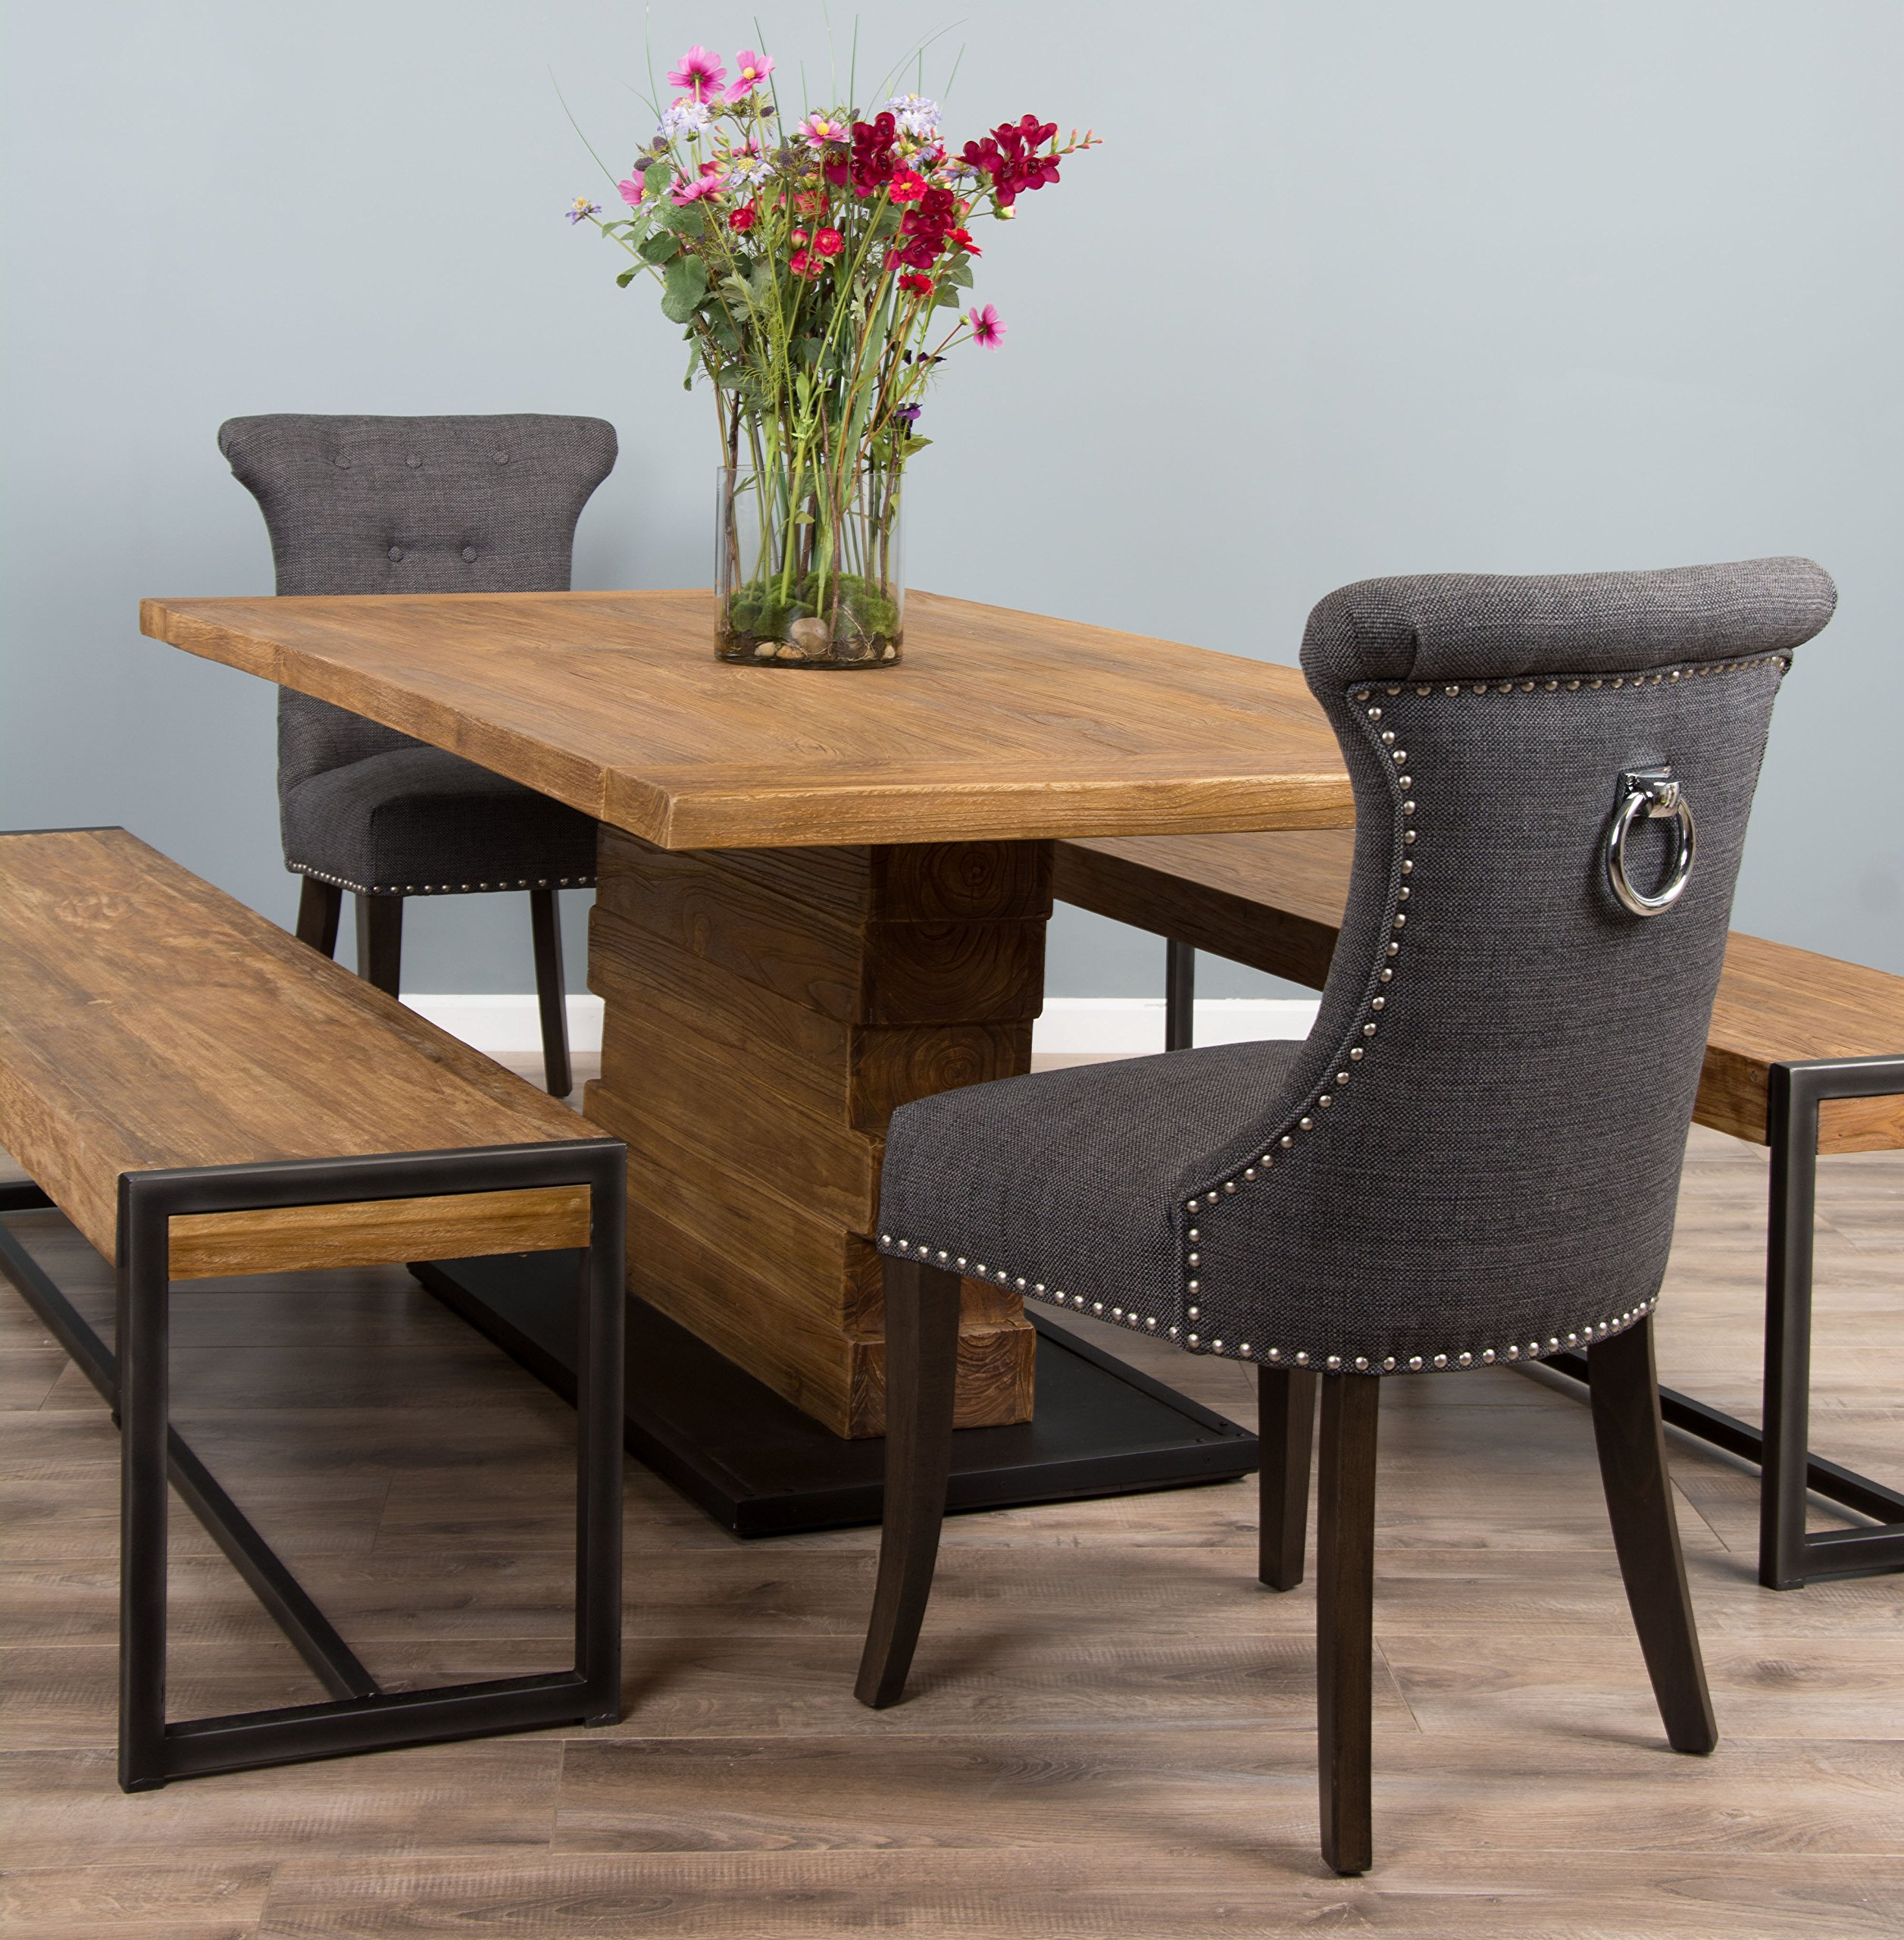 91S9PhH1JxL - 2m Reclaimed Teak Urban Fusion Pedestal Table with Two Backless Benches and Two Dove Grey Windsor Ring Back Dining Chairs